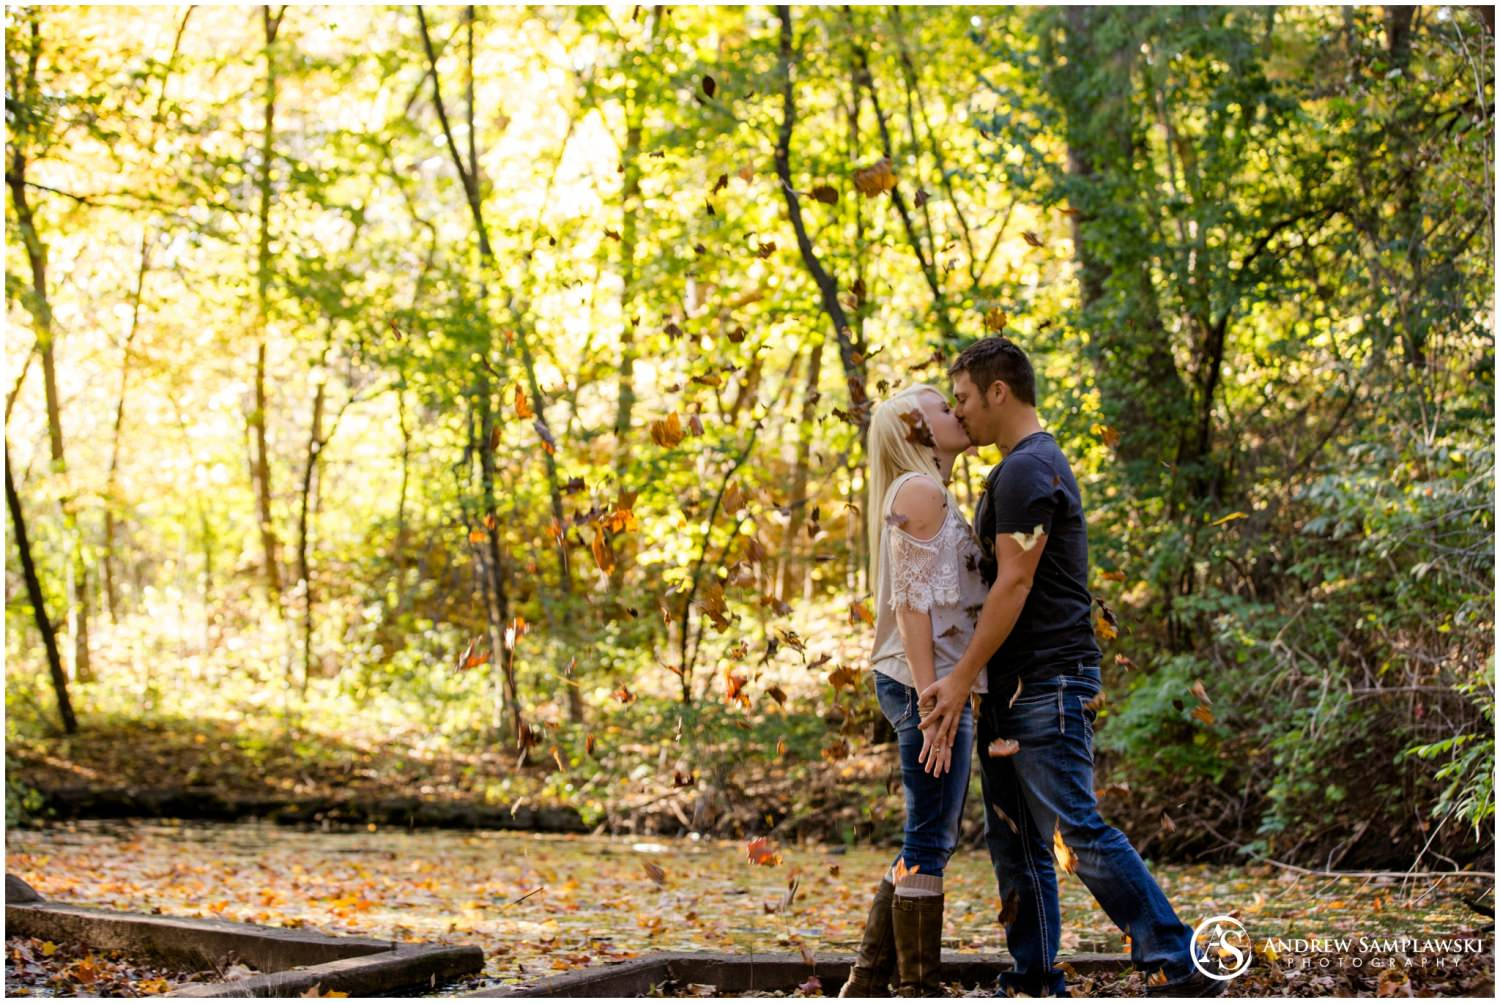 eau claire autumn engagement session andrew samplawski photography